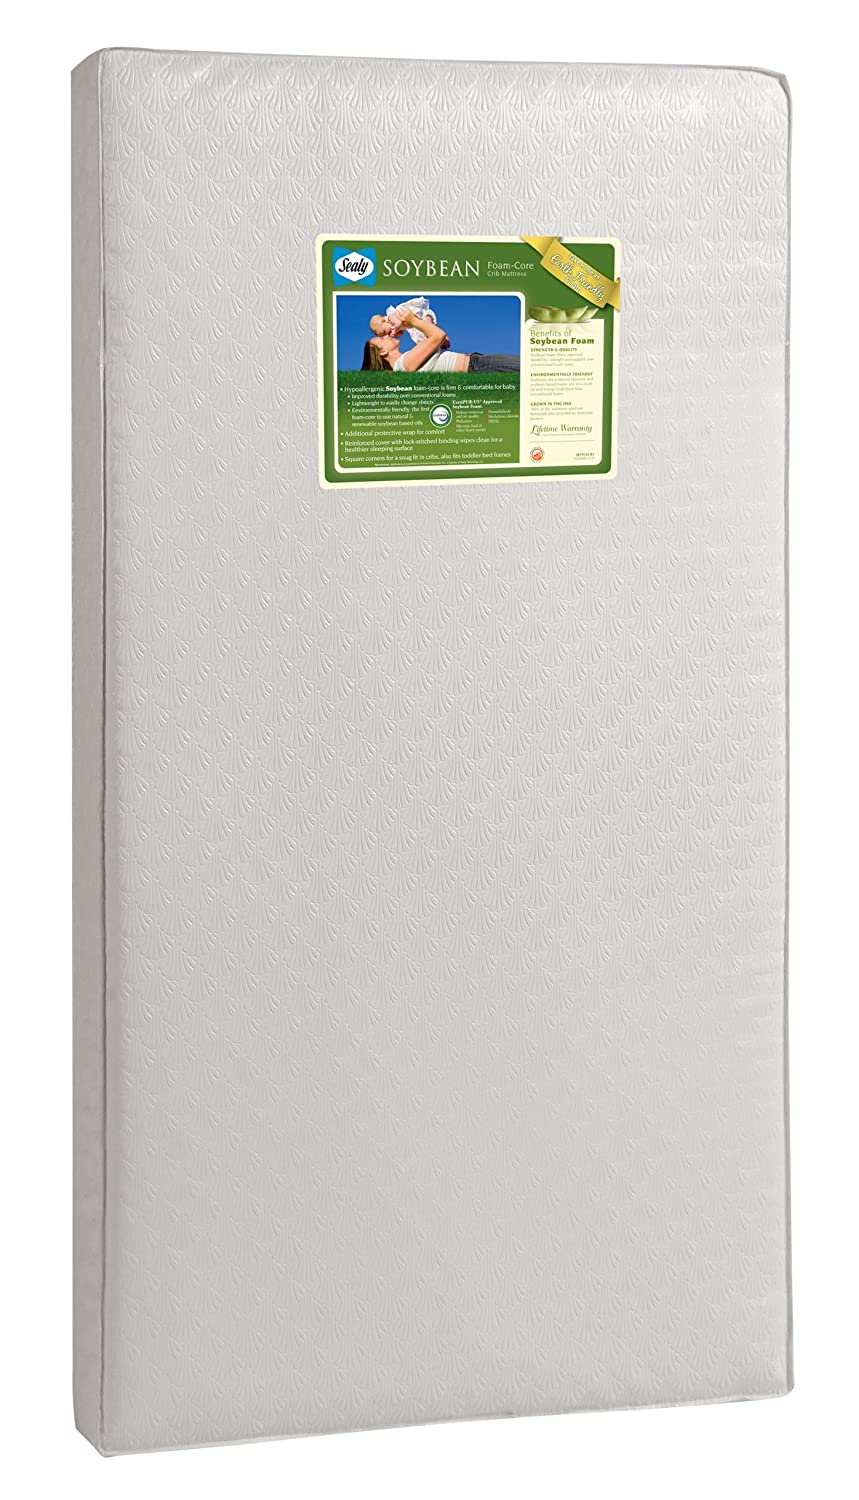 Soybean Foam Crib Mattress